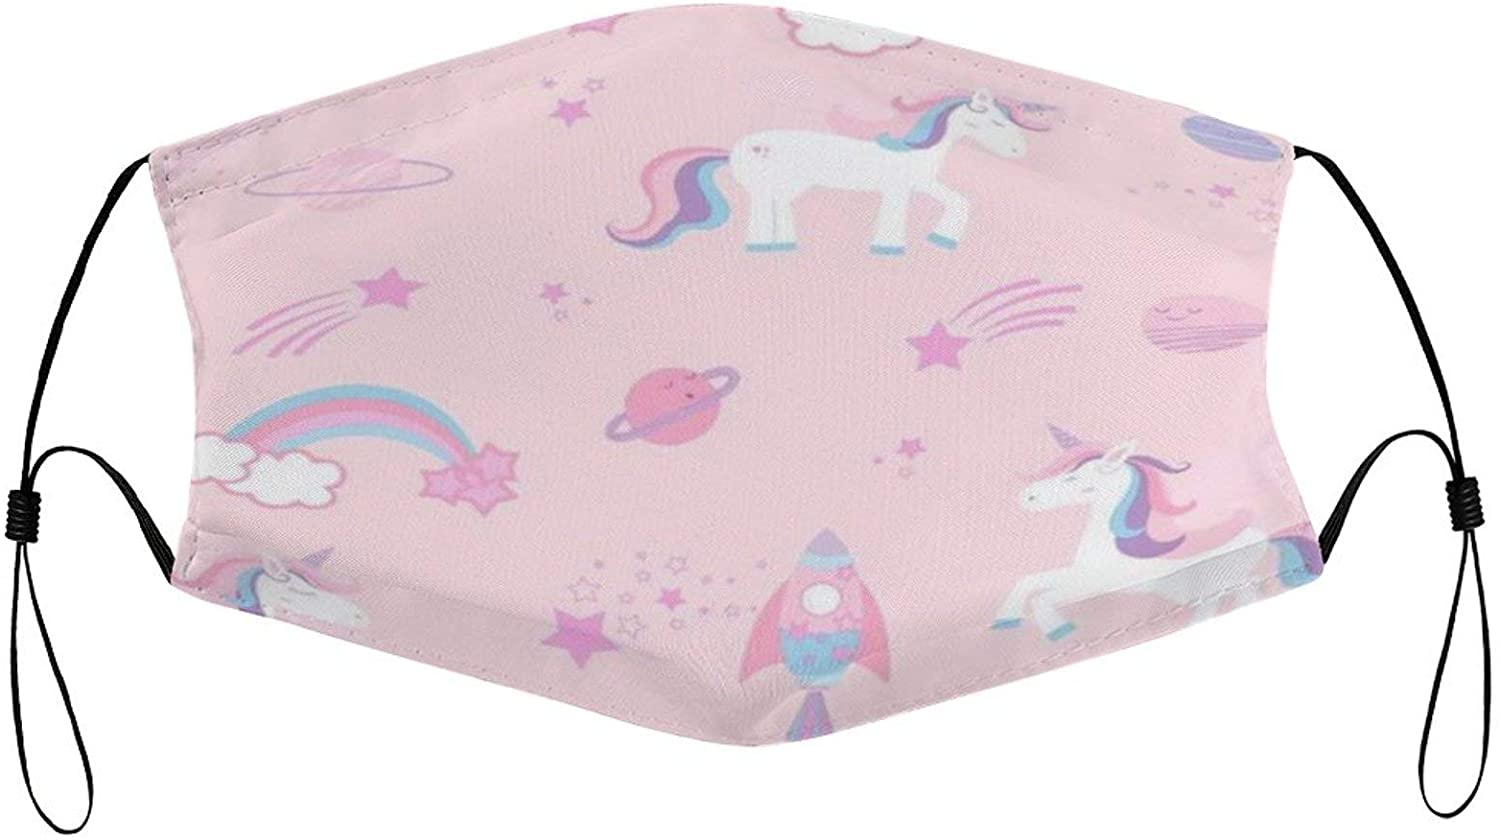 Face Mask Pink Cartoon Unicorn Anti-dust Reusable Washable Unisex Mouth Cover with Breathable and Stretchy Cloth Facial Scarf for Kids with Ear Loops